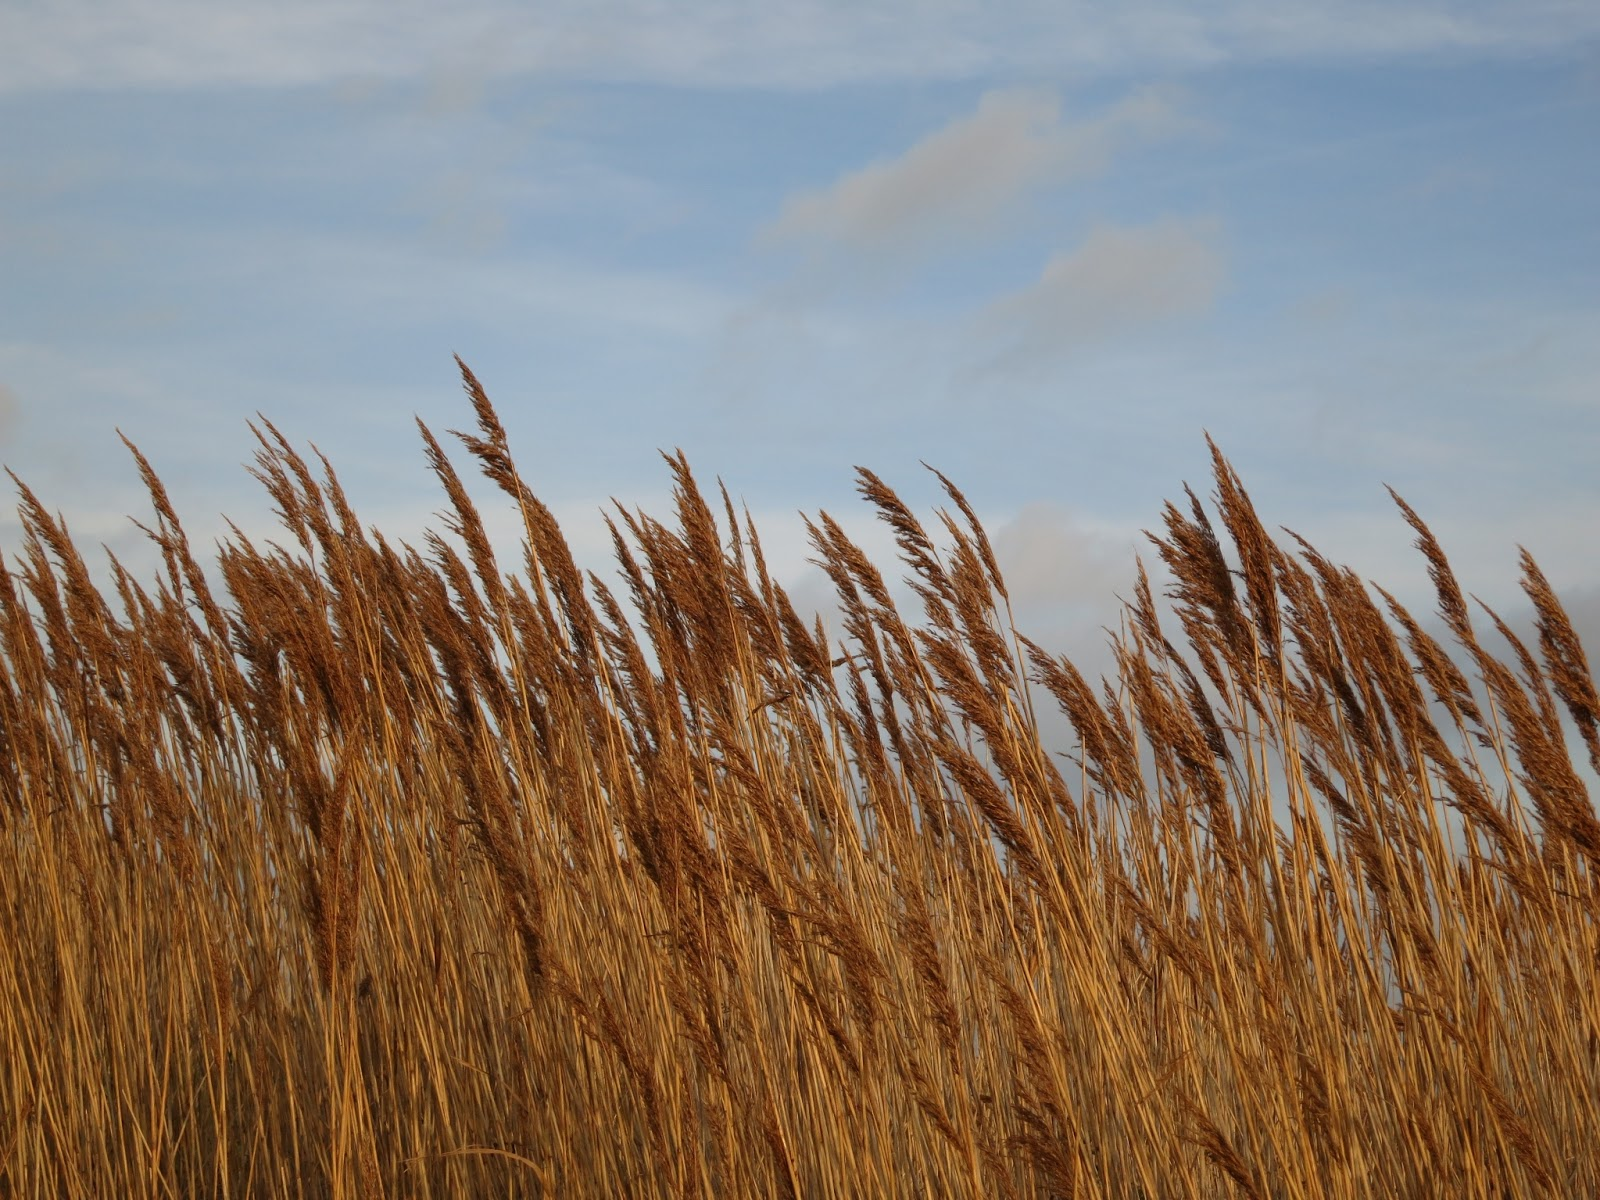 Row of reeds in the gold of evening against a pale blue sky.